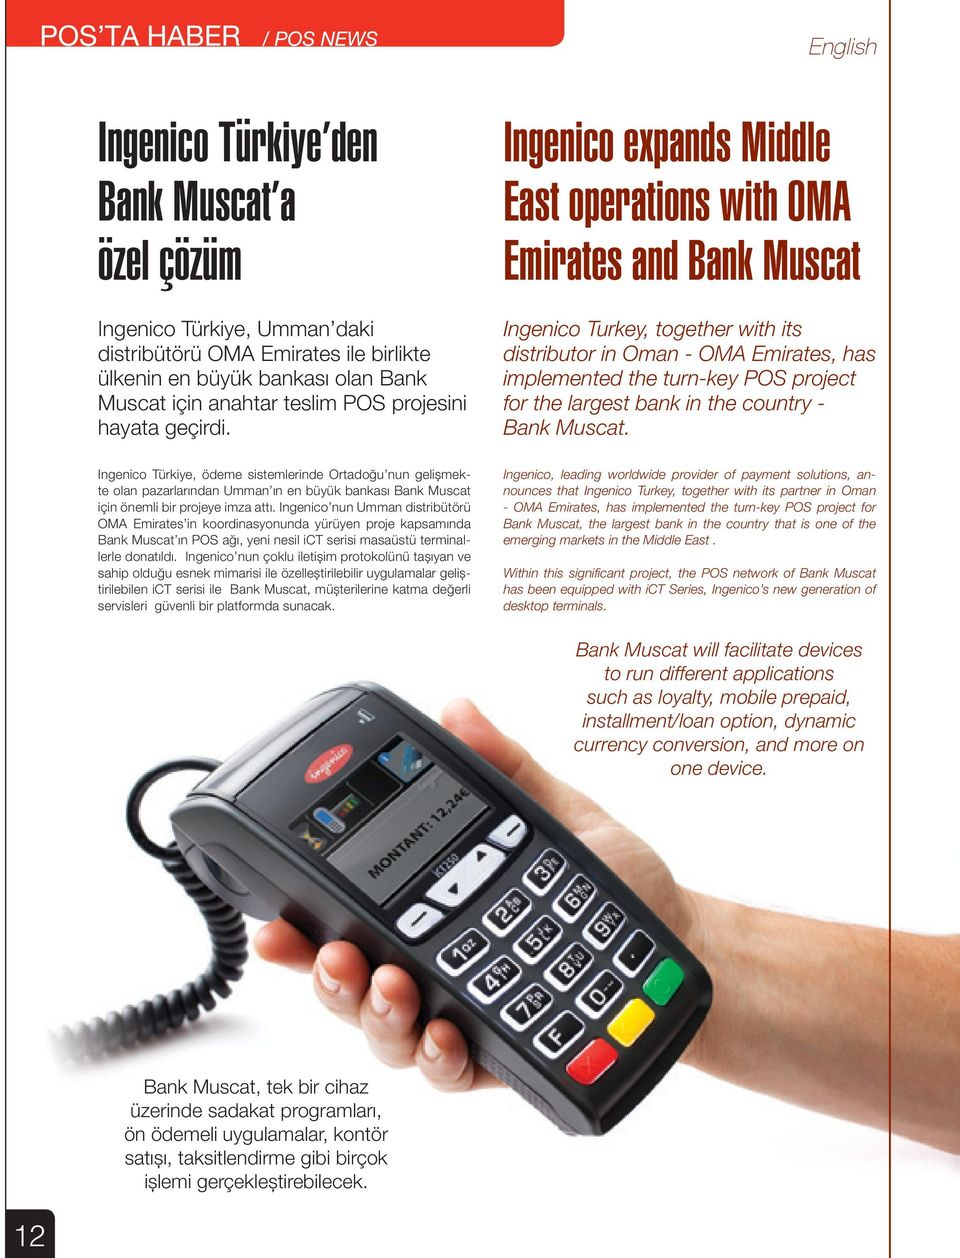 Ingenico expands Middle East operations with OMA Emirates and Bank Muscat Ingenico Turkey, together with its distributor in Oman - OMA Emirates, has implemented the turn-key POS project for the